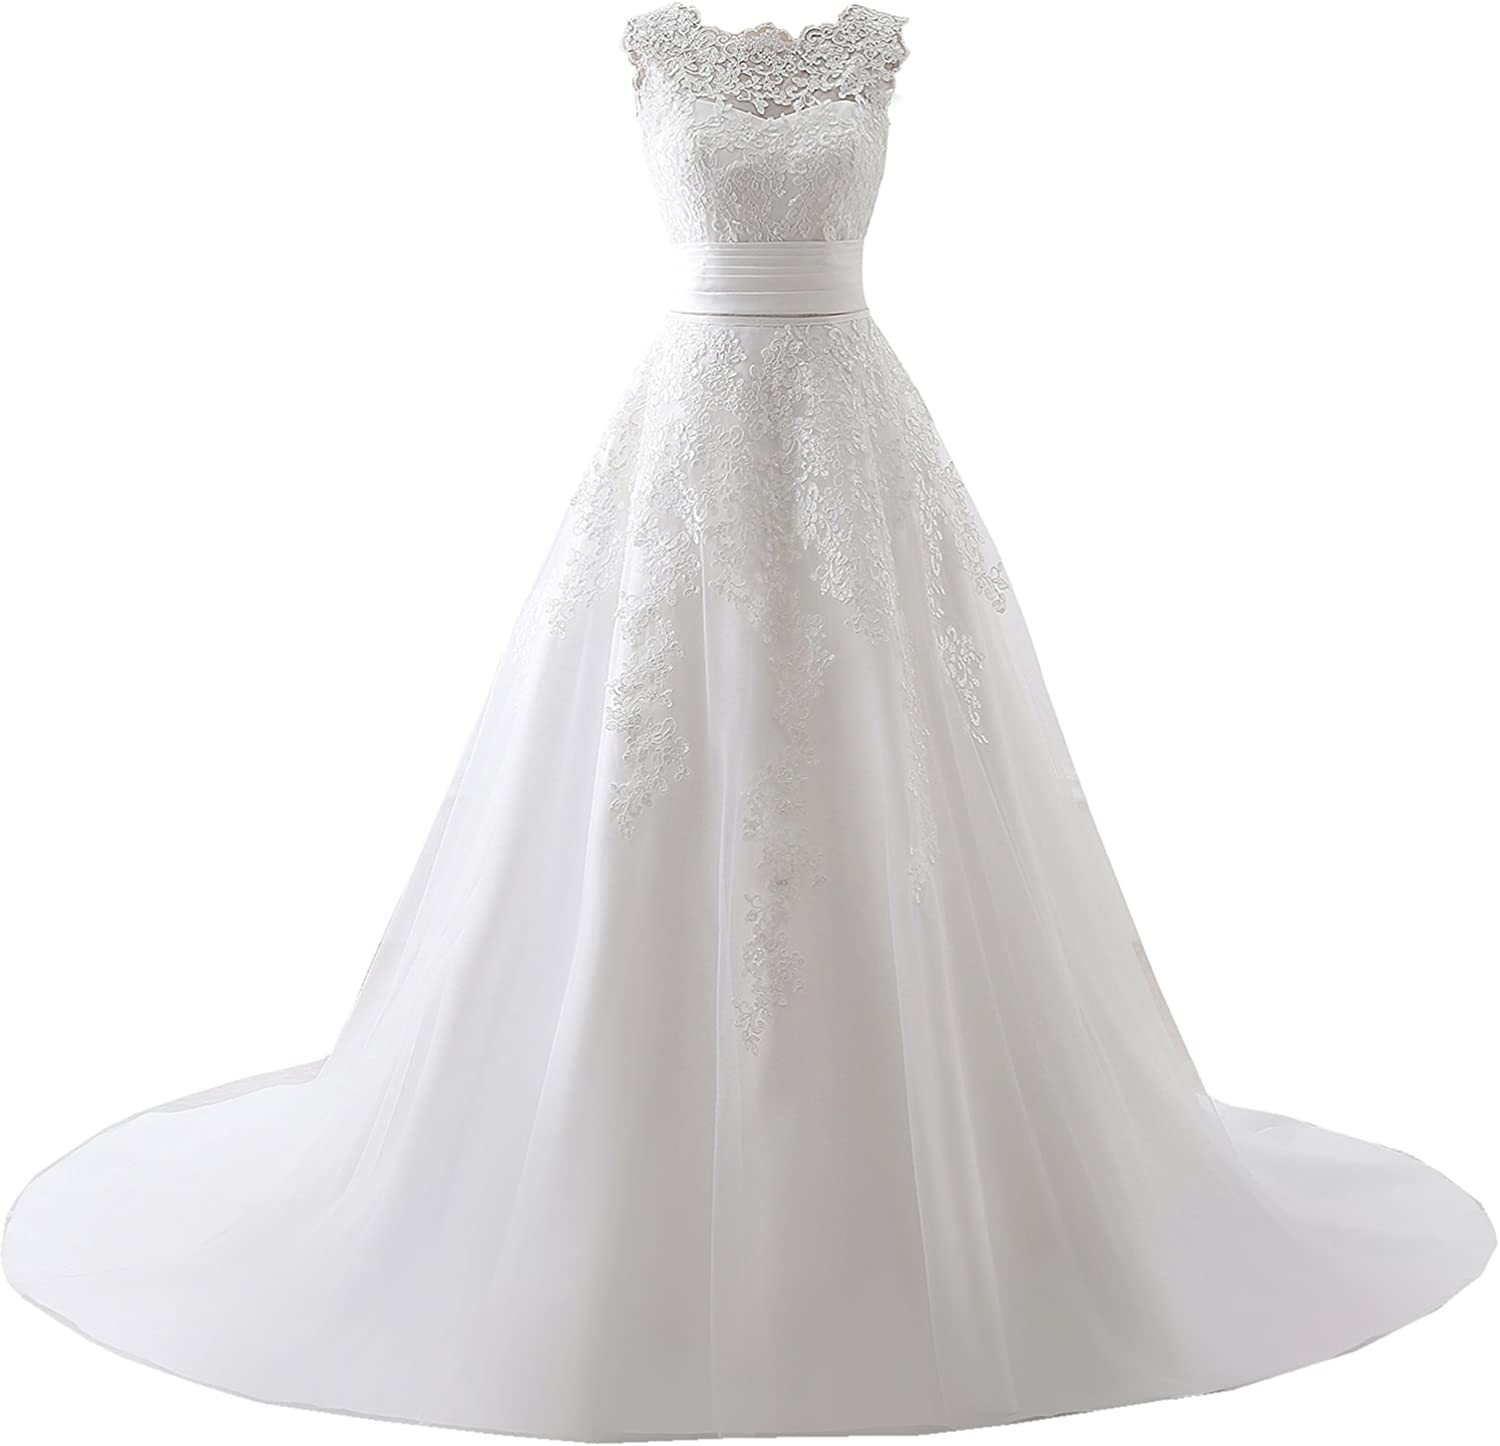 Engerla Women's Lace Sweep Train Straps Wedding Dress with Removable Skirt